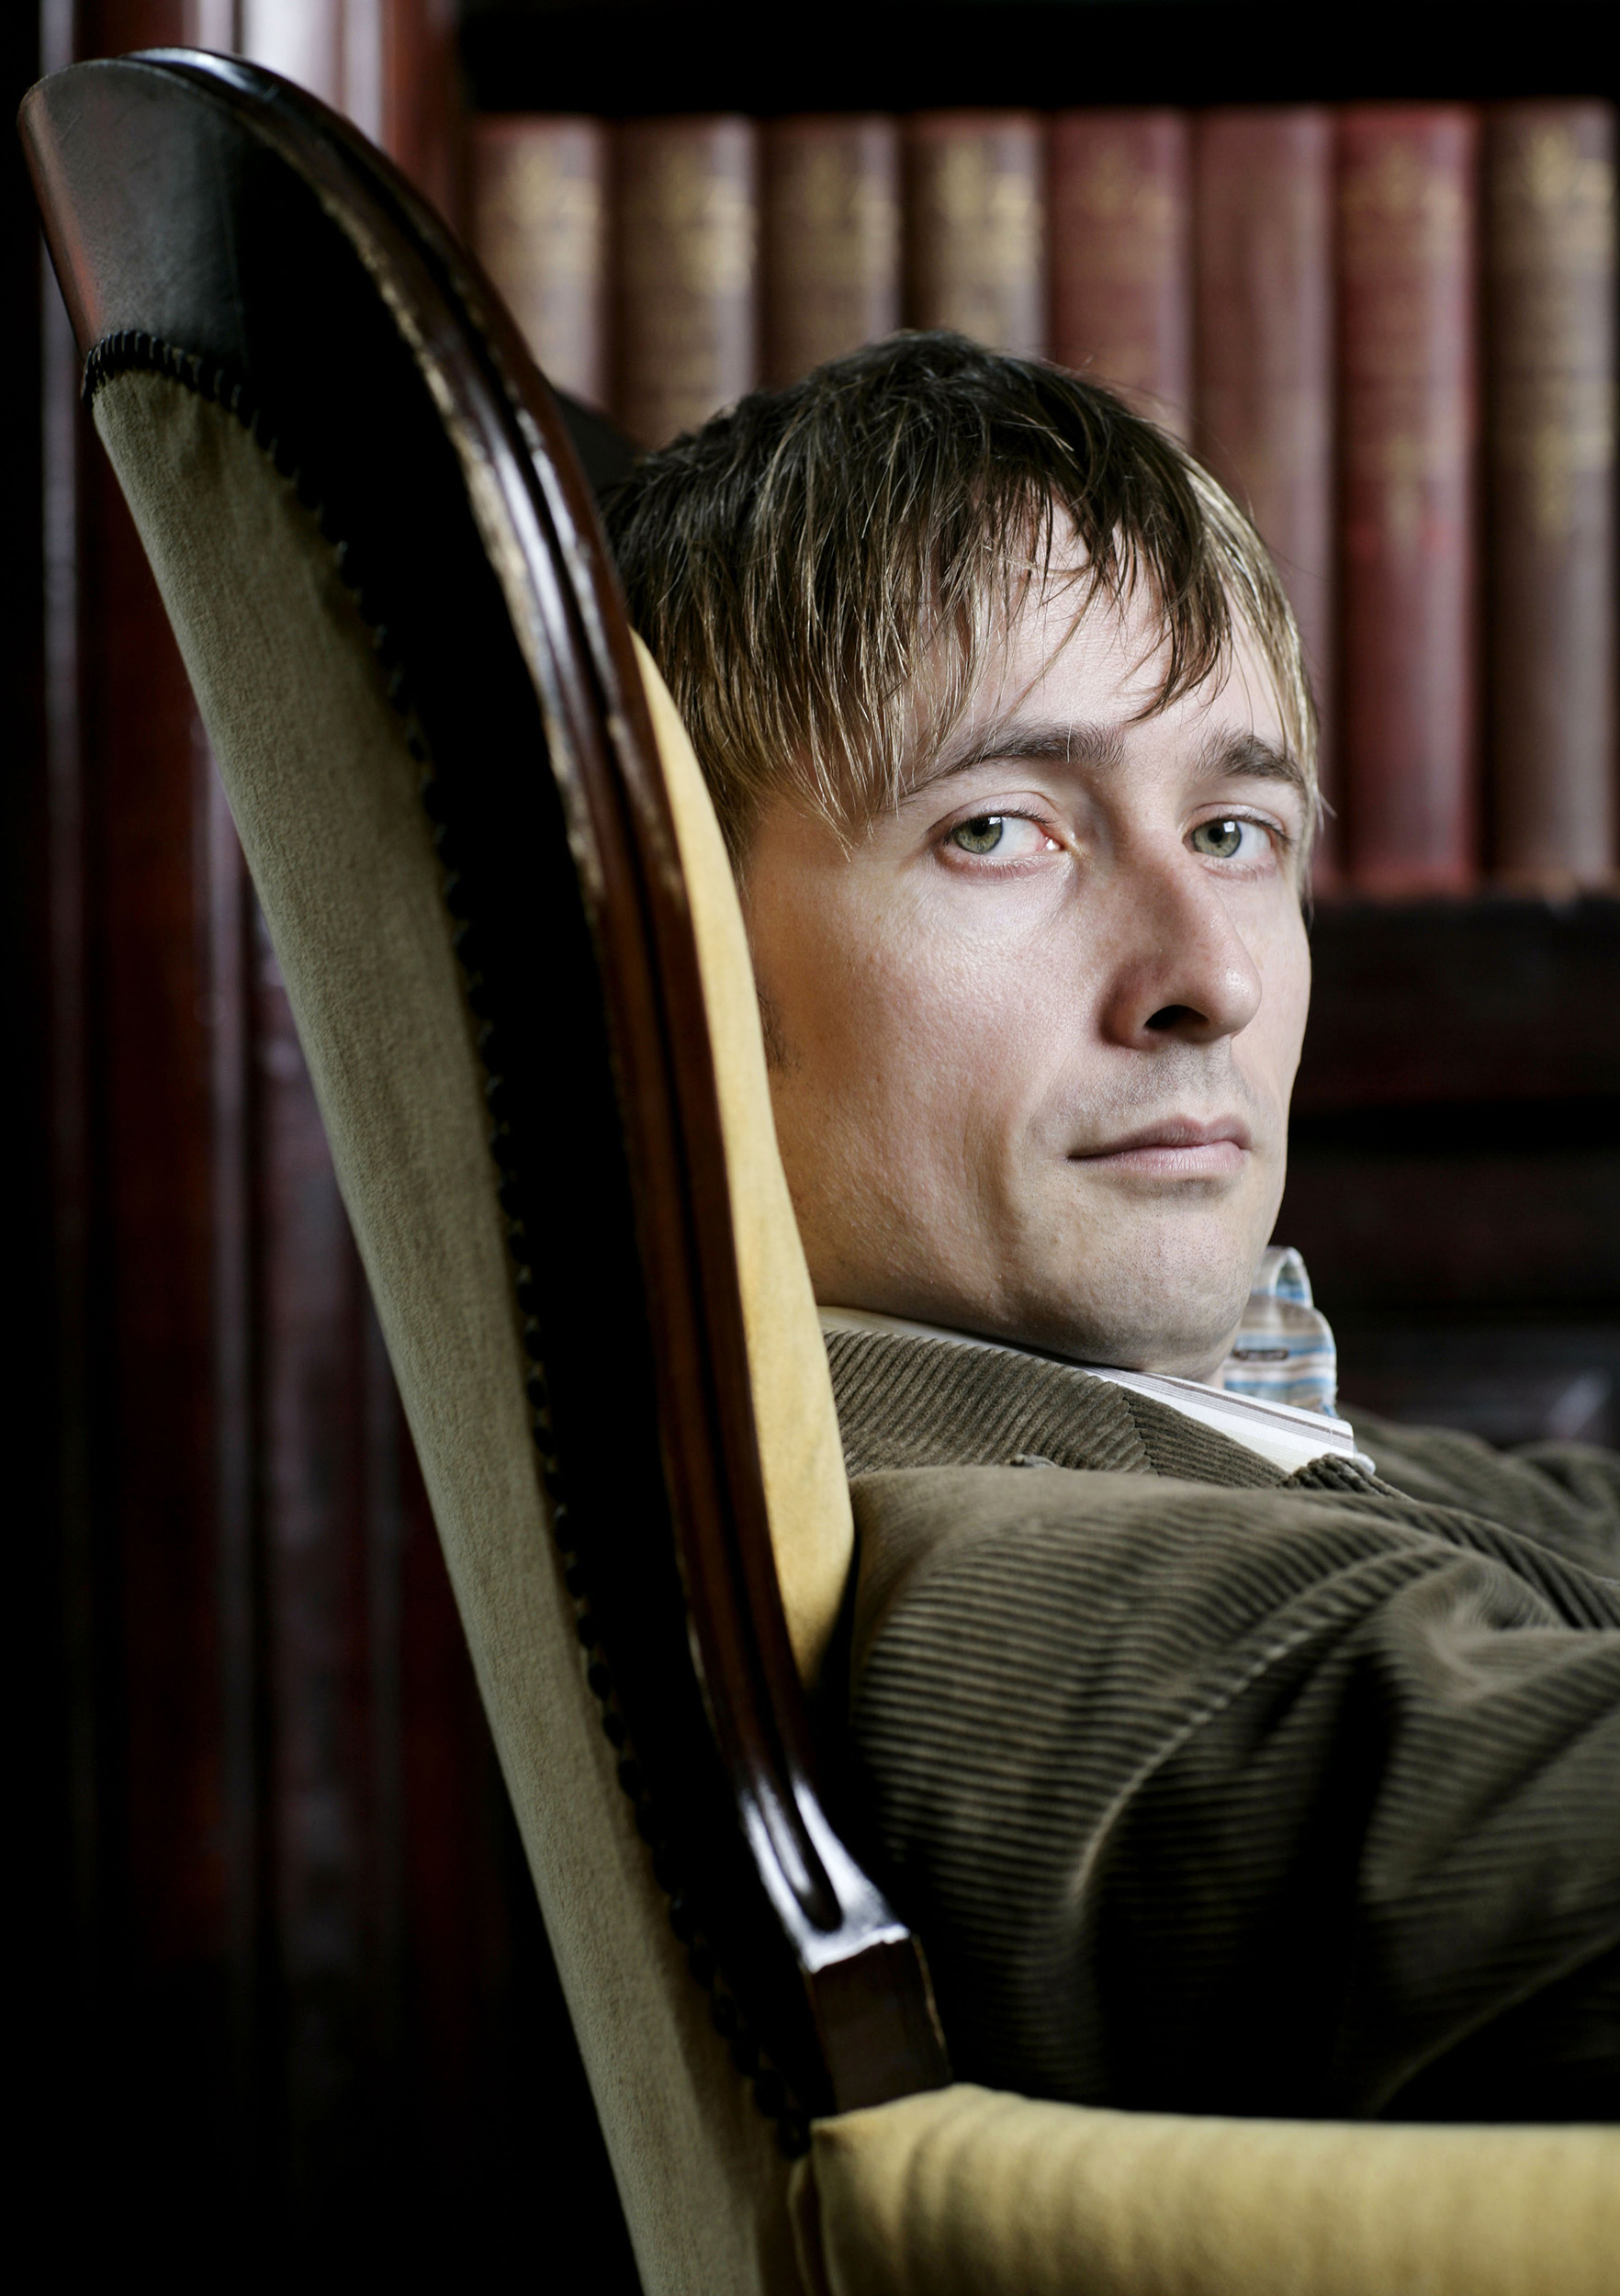 Neil Hannon for The Sunday Times